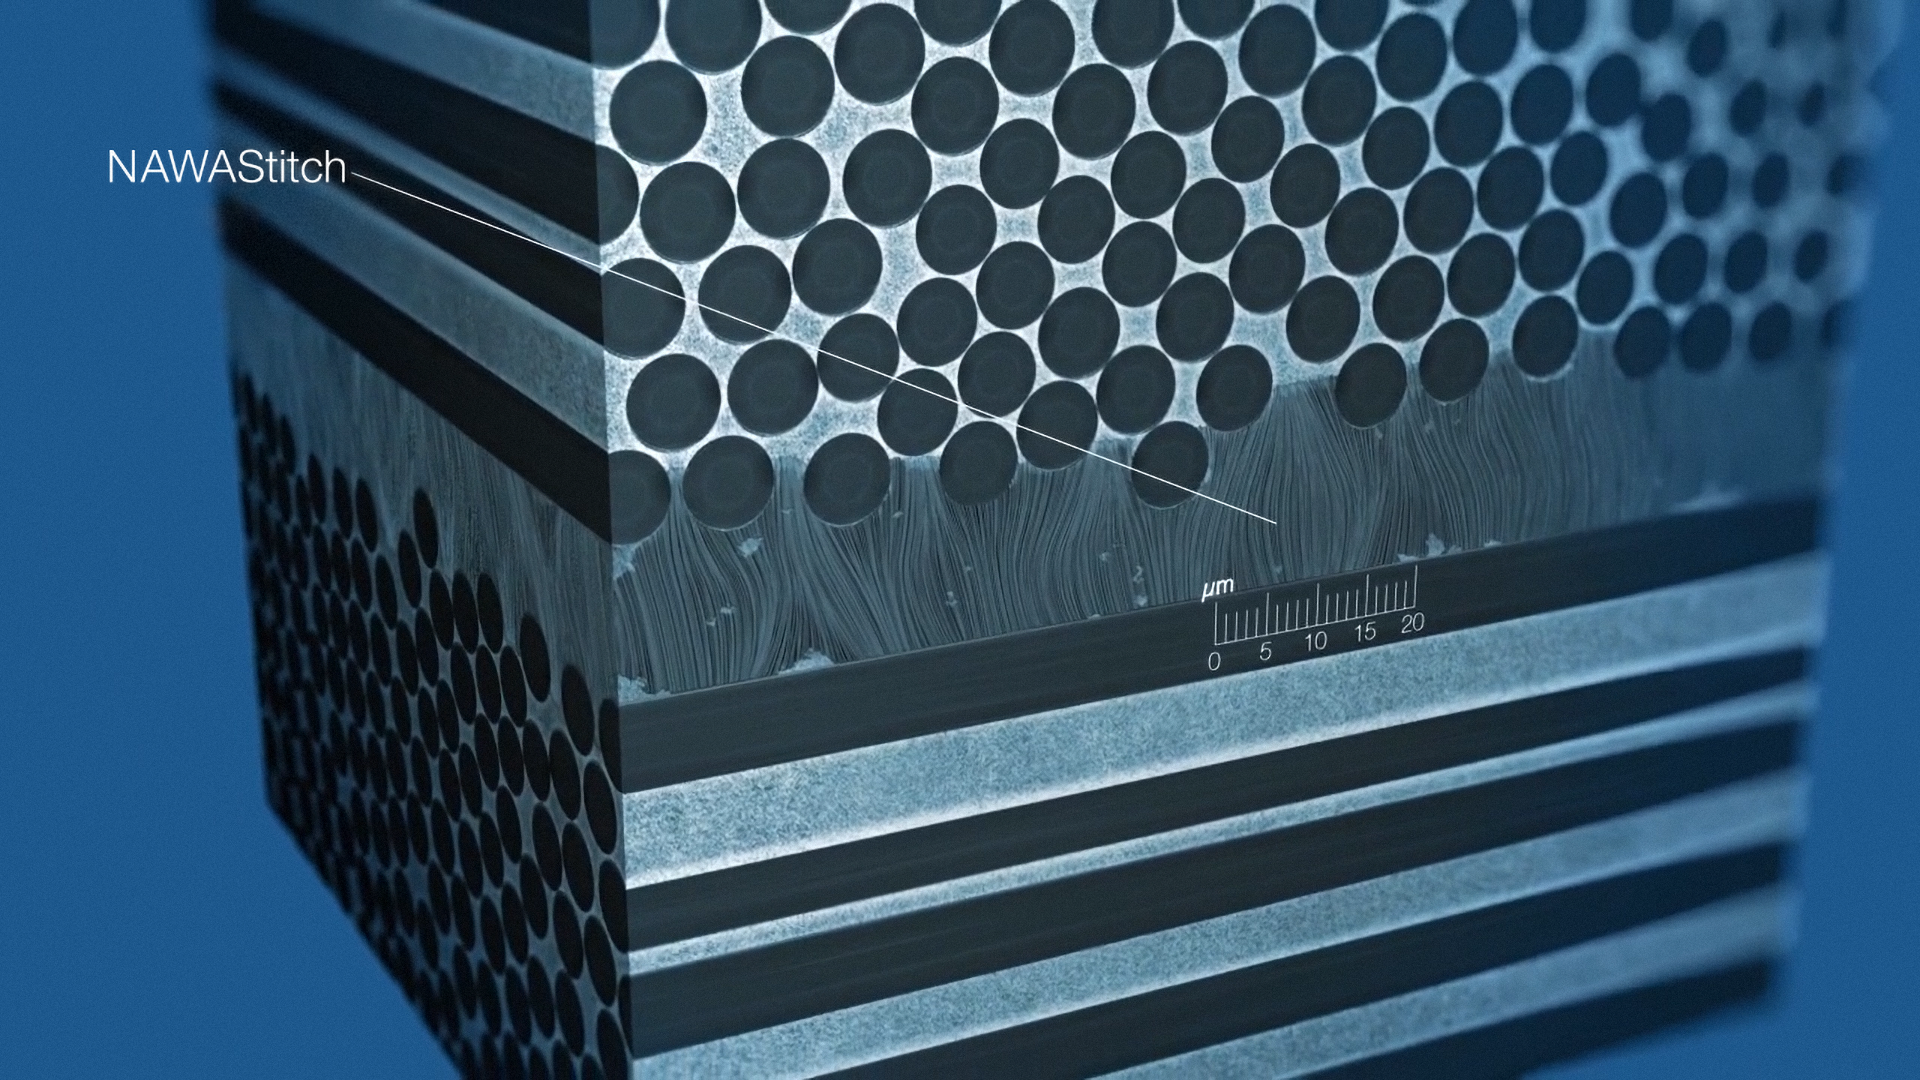 NawaStitch will use vertically aligned carbon nanotubes to reinforce the weakest part of carbon composites – the glue between the layers – to make parts even lighter and stronger